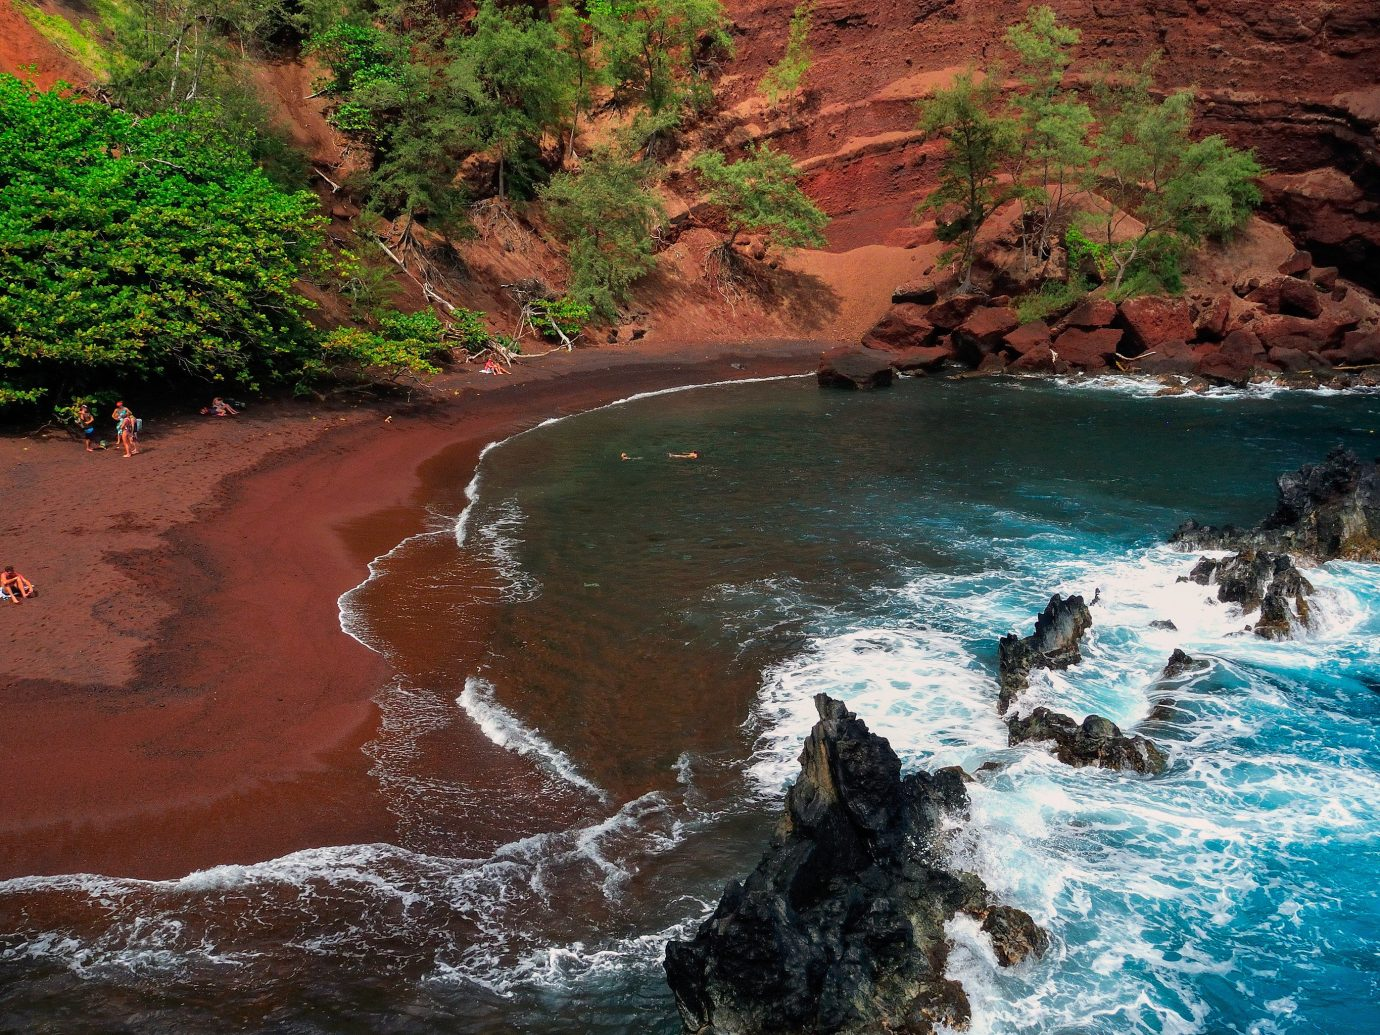 Beach water outdoor Nature valley landform body of water River Waterfall rock rapid water feature stream canyon Sea Coast surrounded